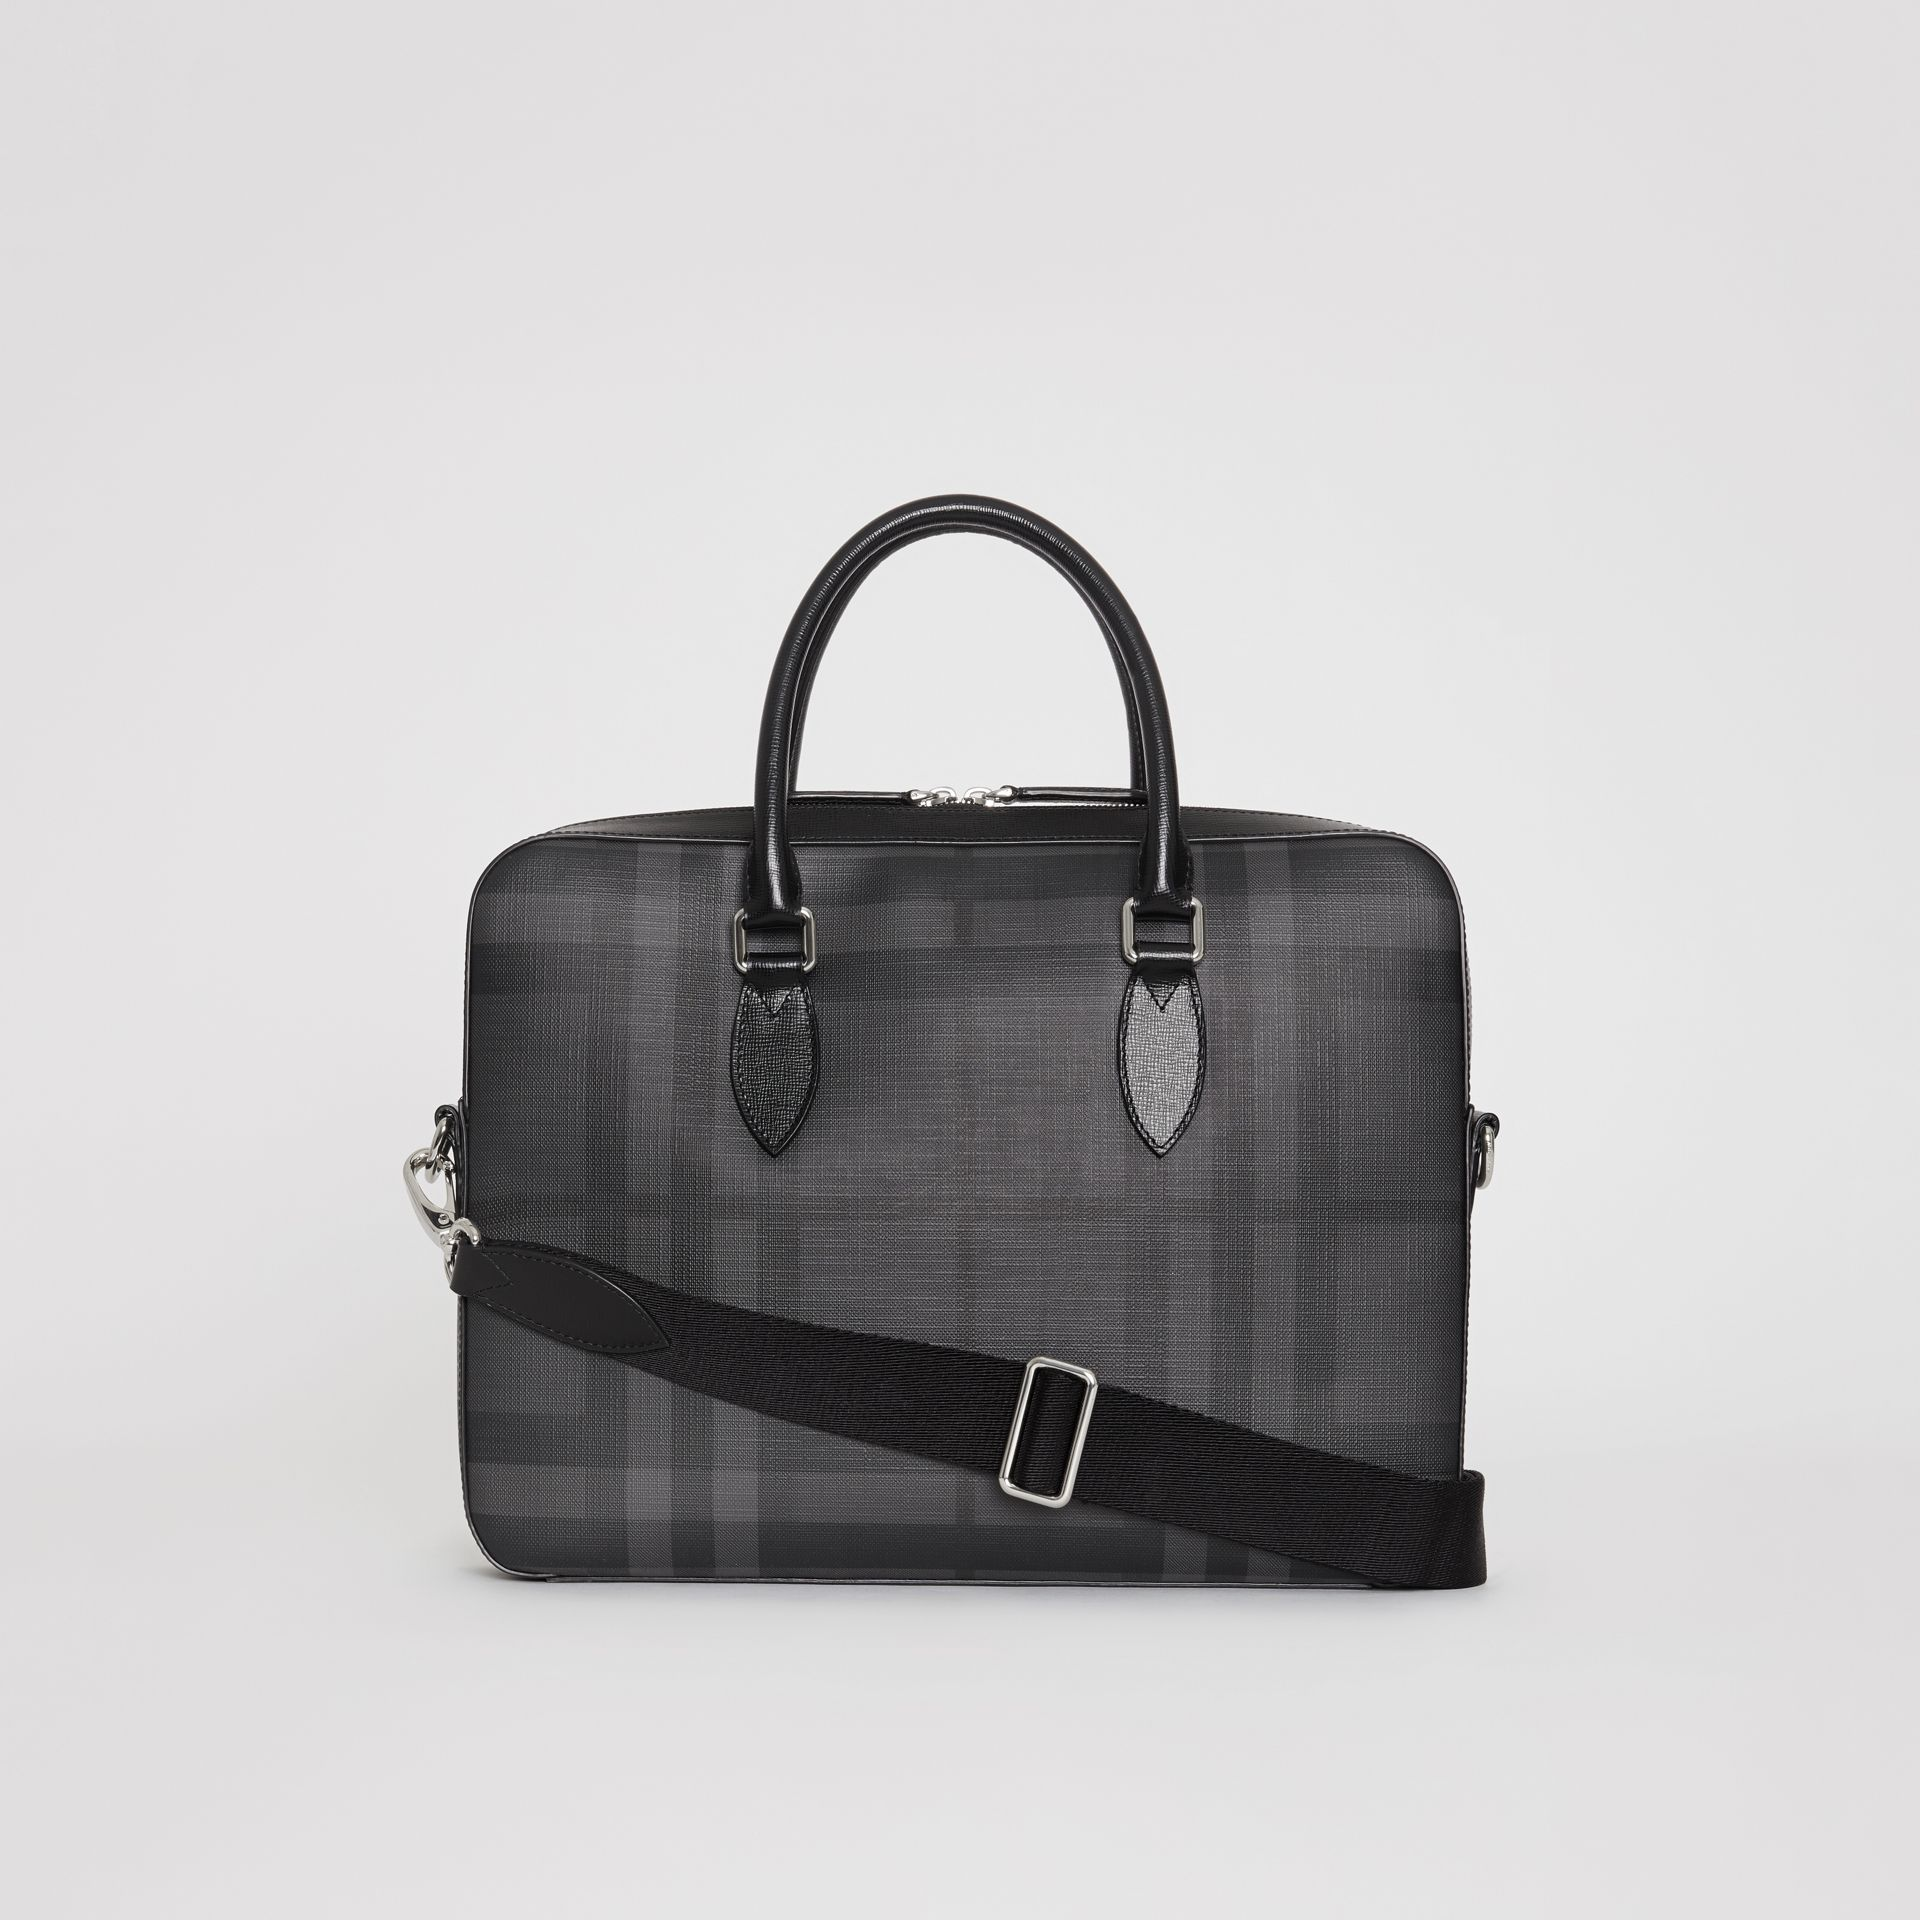 Sac The Barrow fin avec motif London check (Anthracite/noir) - Homme | Burberry Canada - photo de la galerie 7